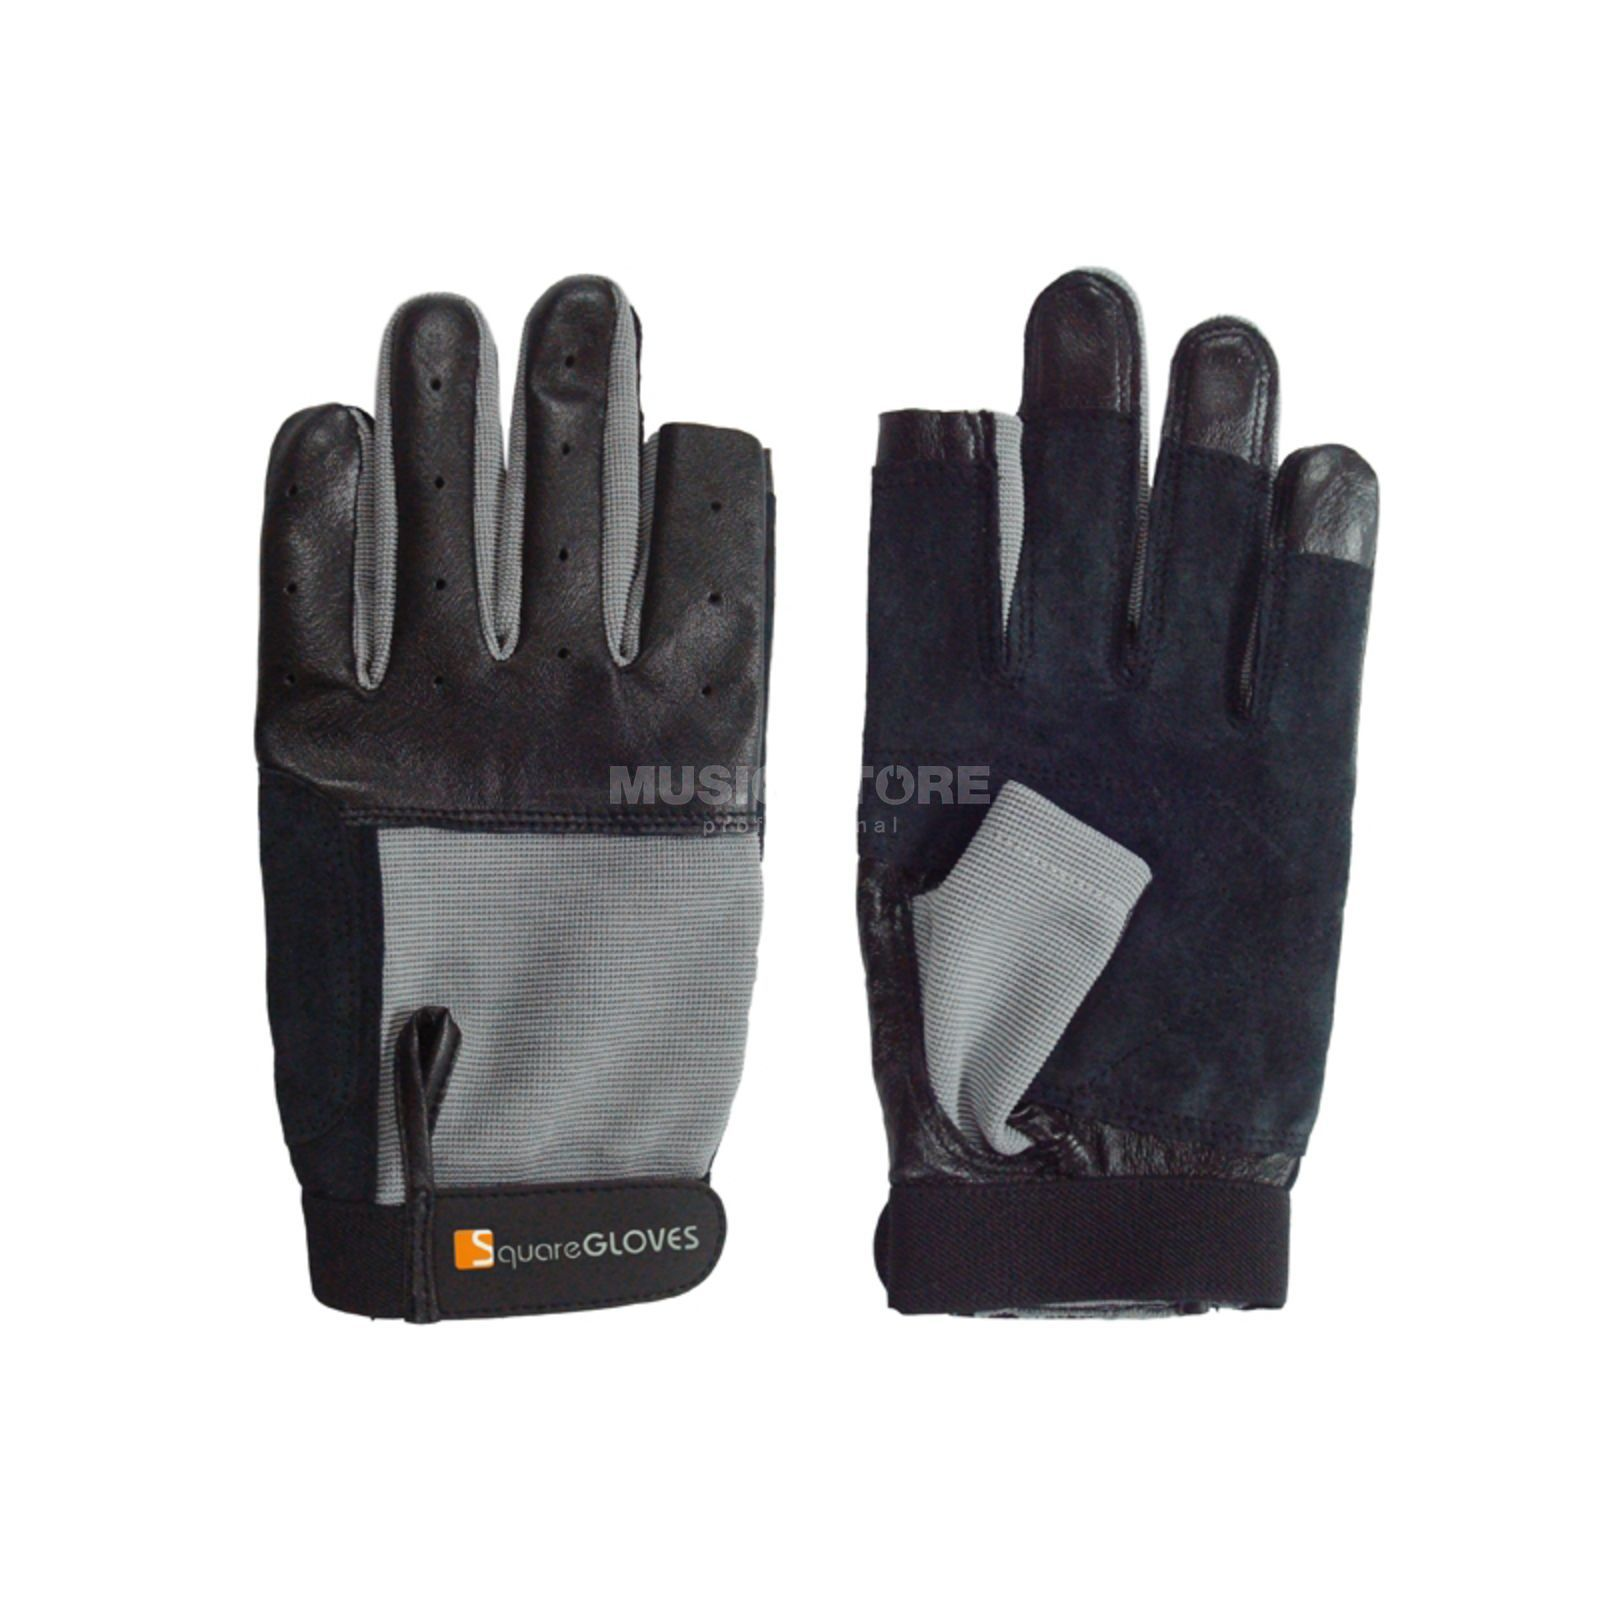 Global Truss Rigger Gloves black Size L Produktbillede